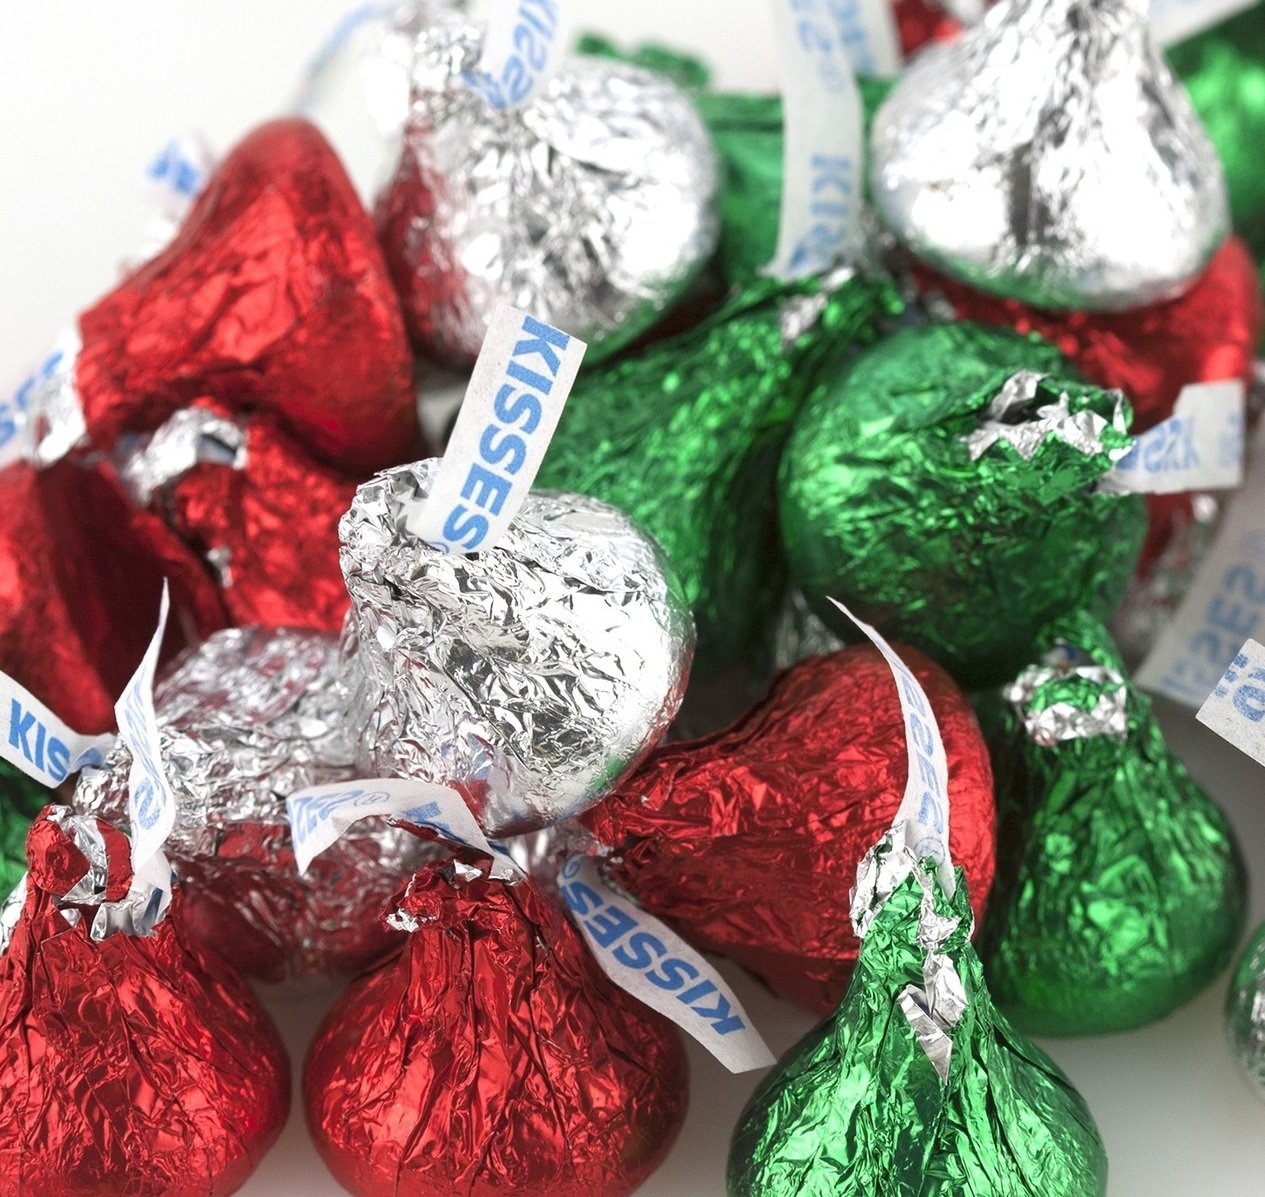 Amazon.com : Hershey Chocolate Kisses - Red, Green & Silver ...